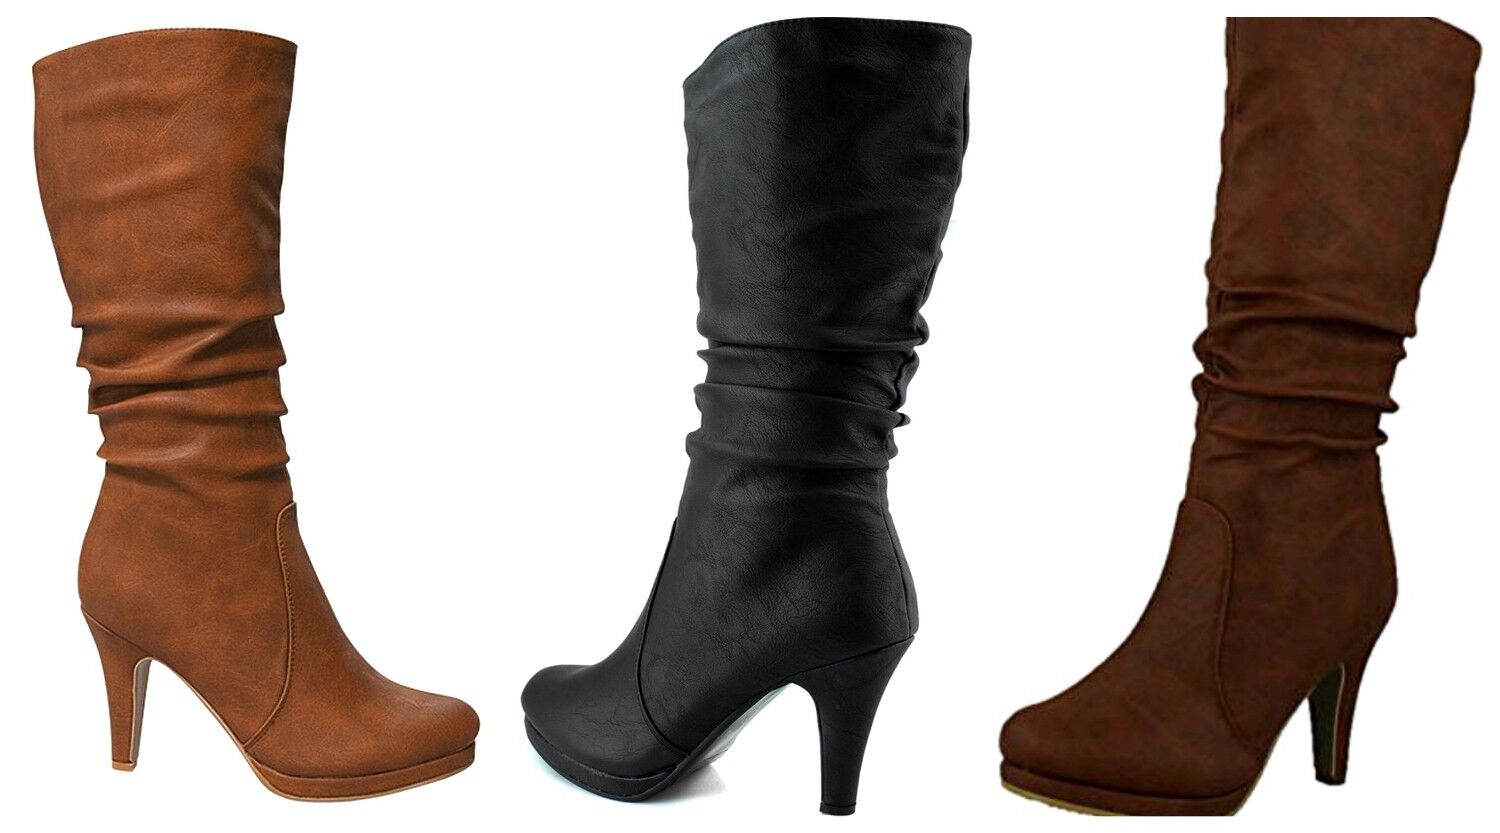 55b5c7c0461f Details about Top Moda Page-43 Womens Fashion Mid Calf Round Toe Slouched  High Heel Boots